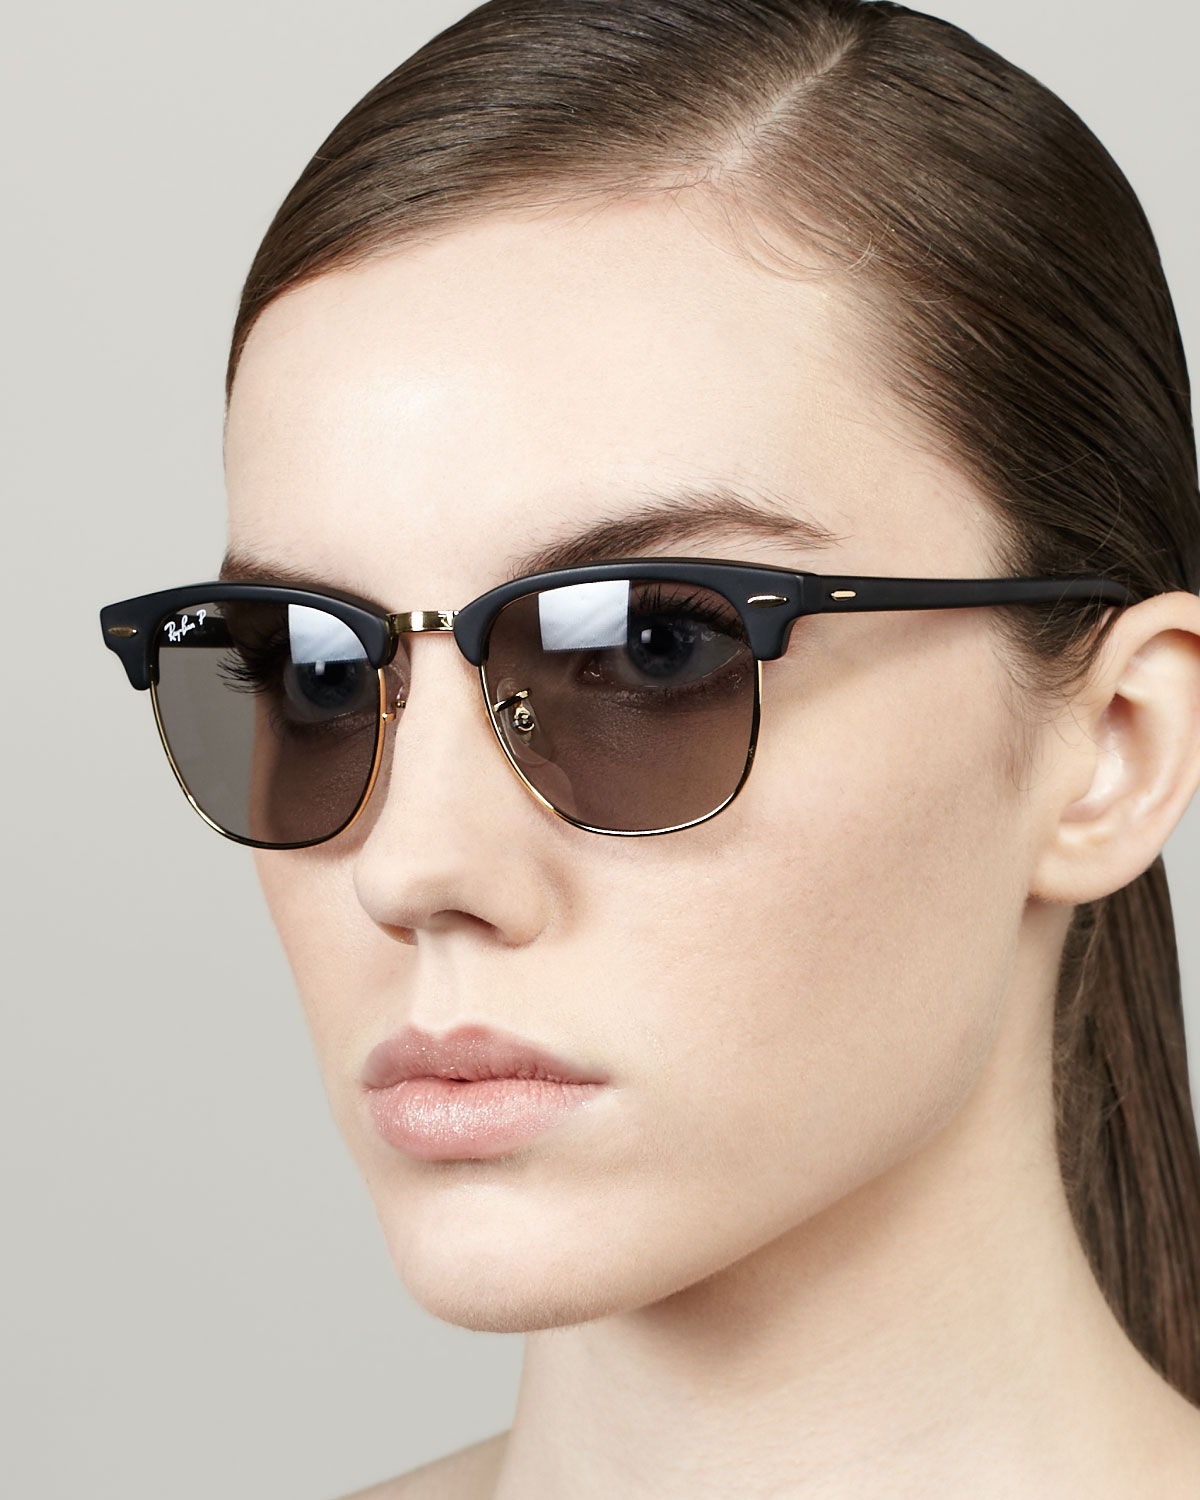 579d9423f1984 ... spain gallery. previously sold at bergdorf goodman womens clubmaster  sunglasses womens ray ban clubmaster d665d